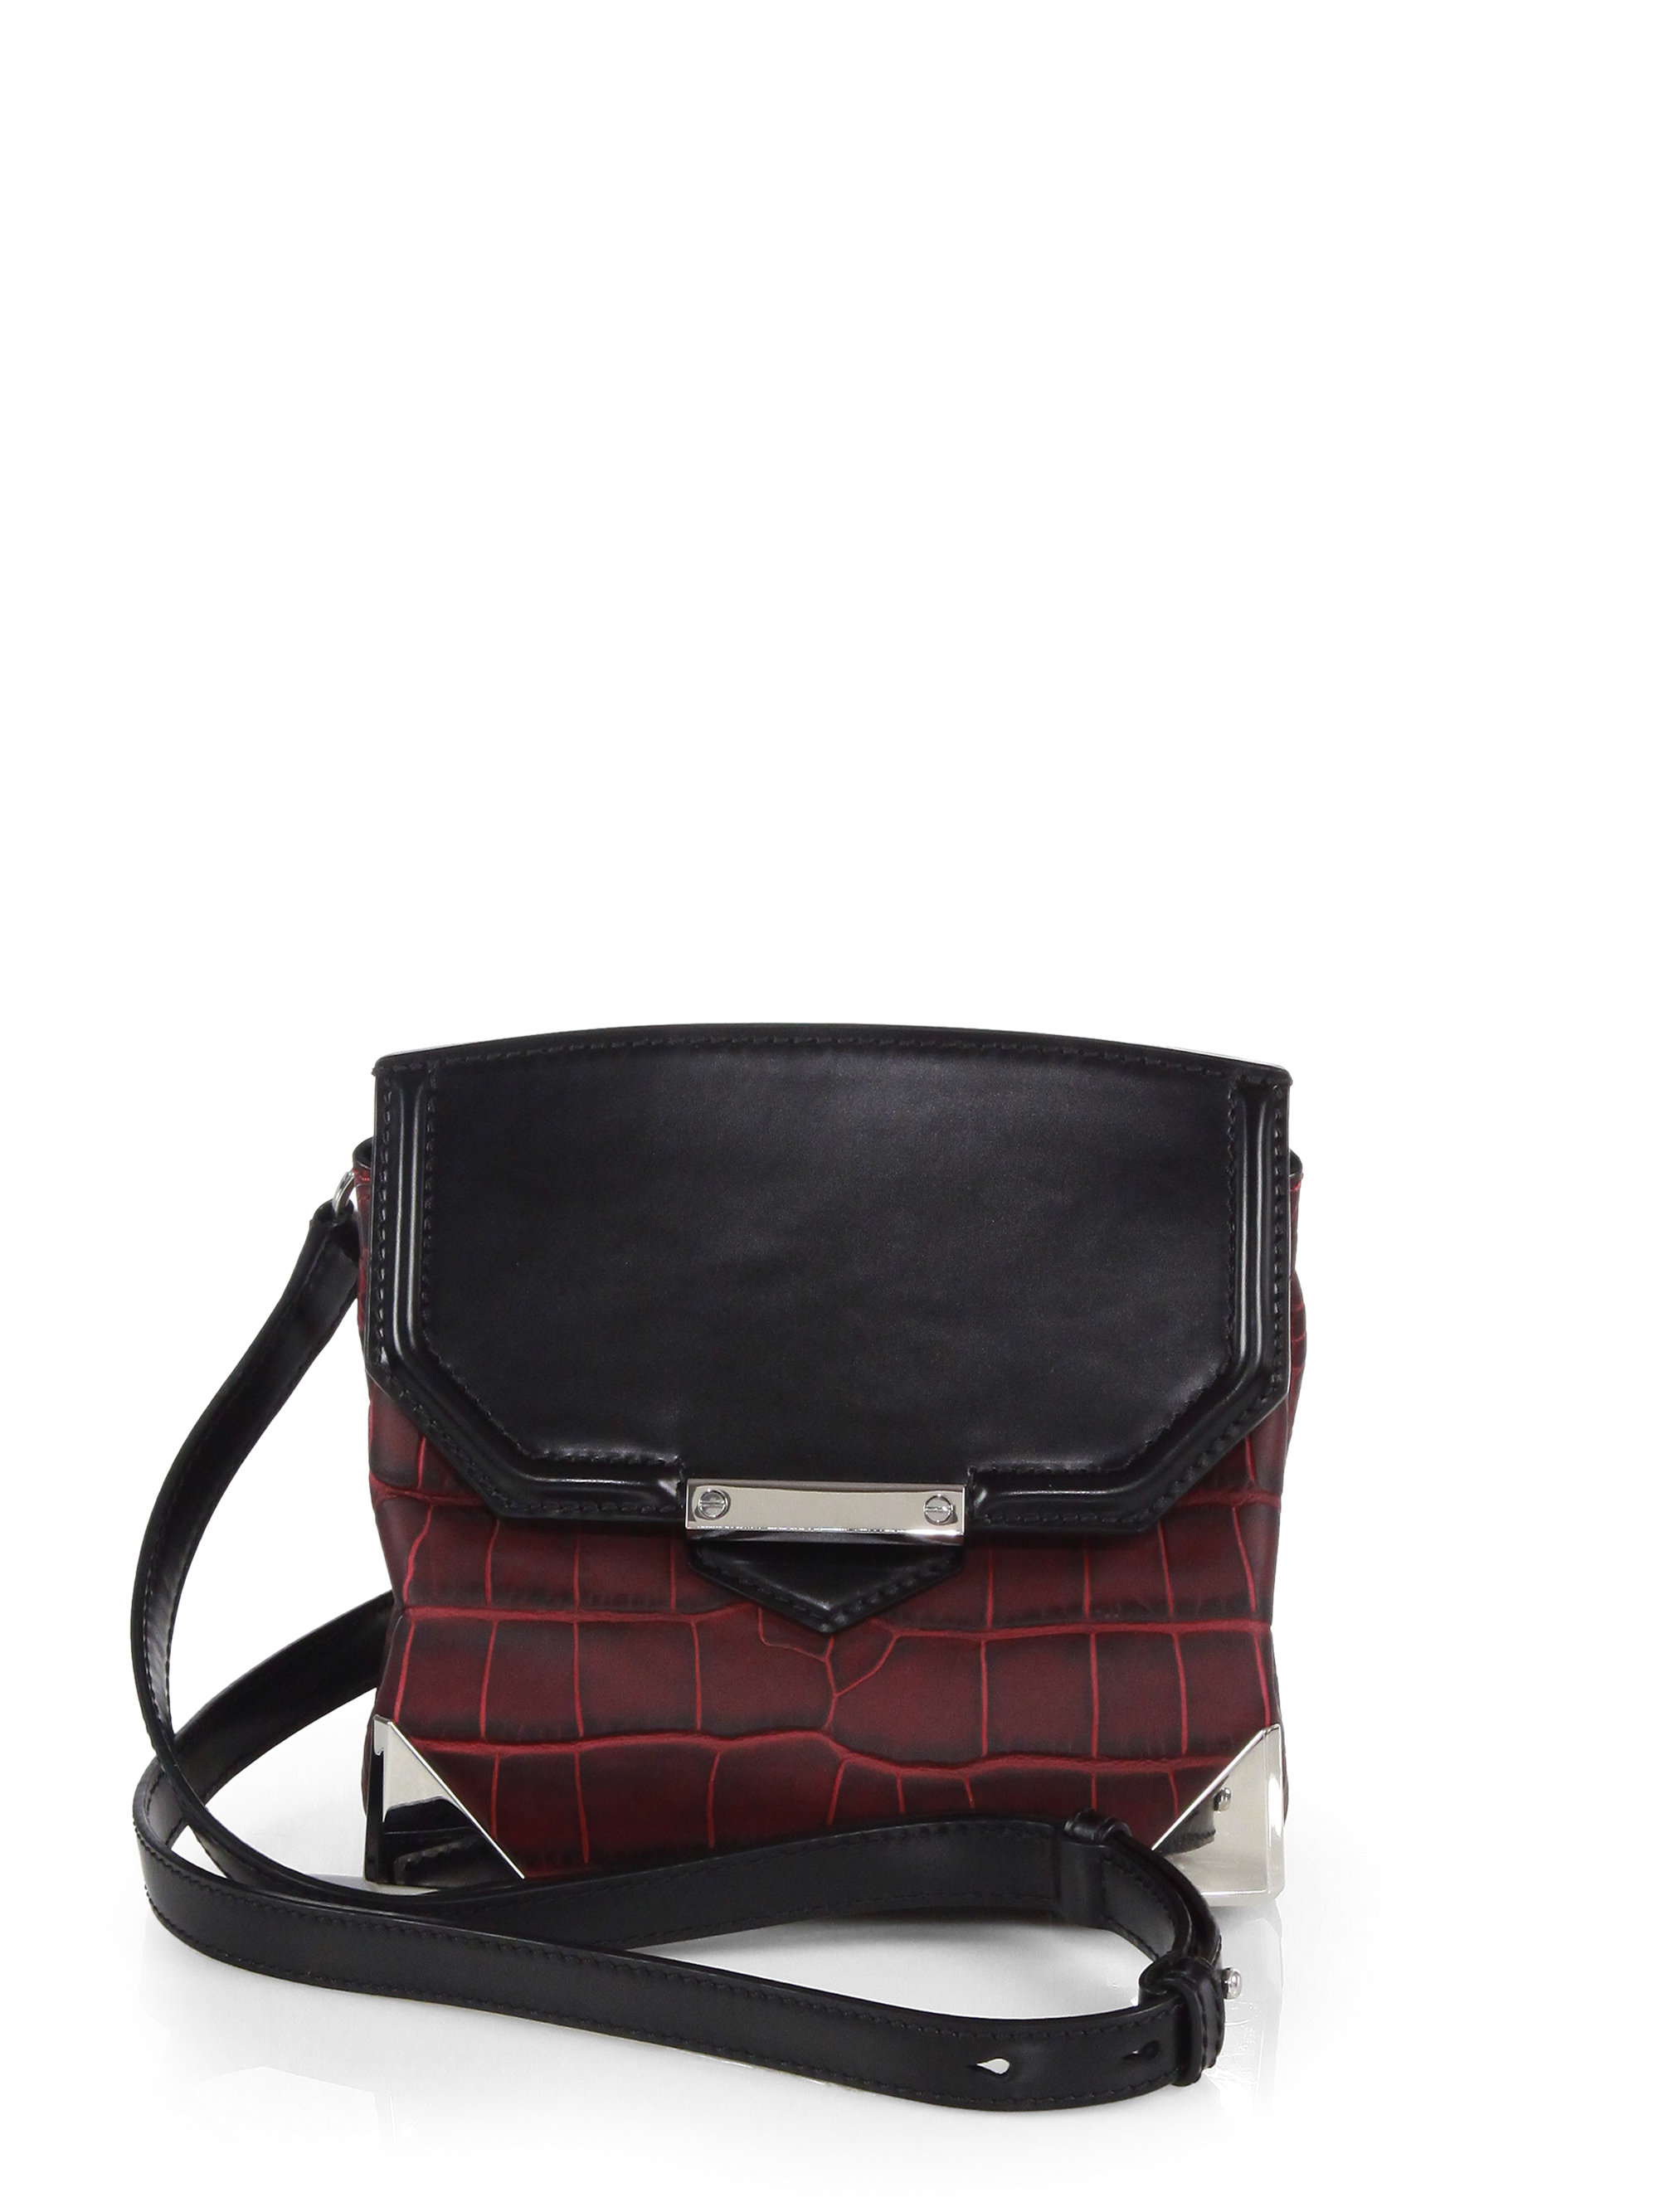 516cbed6d3d5 Lyst - Alexander Wang Marion Prisma Embossed Leather Crossbody Bag ...